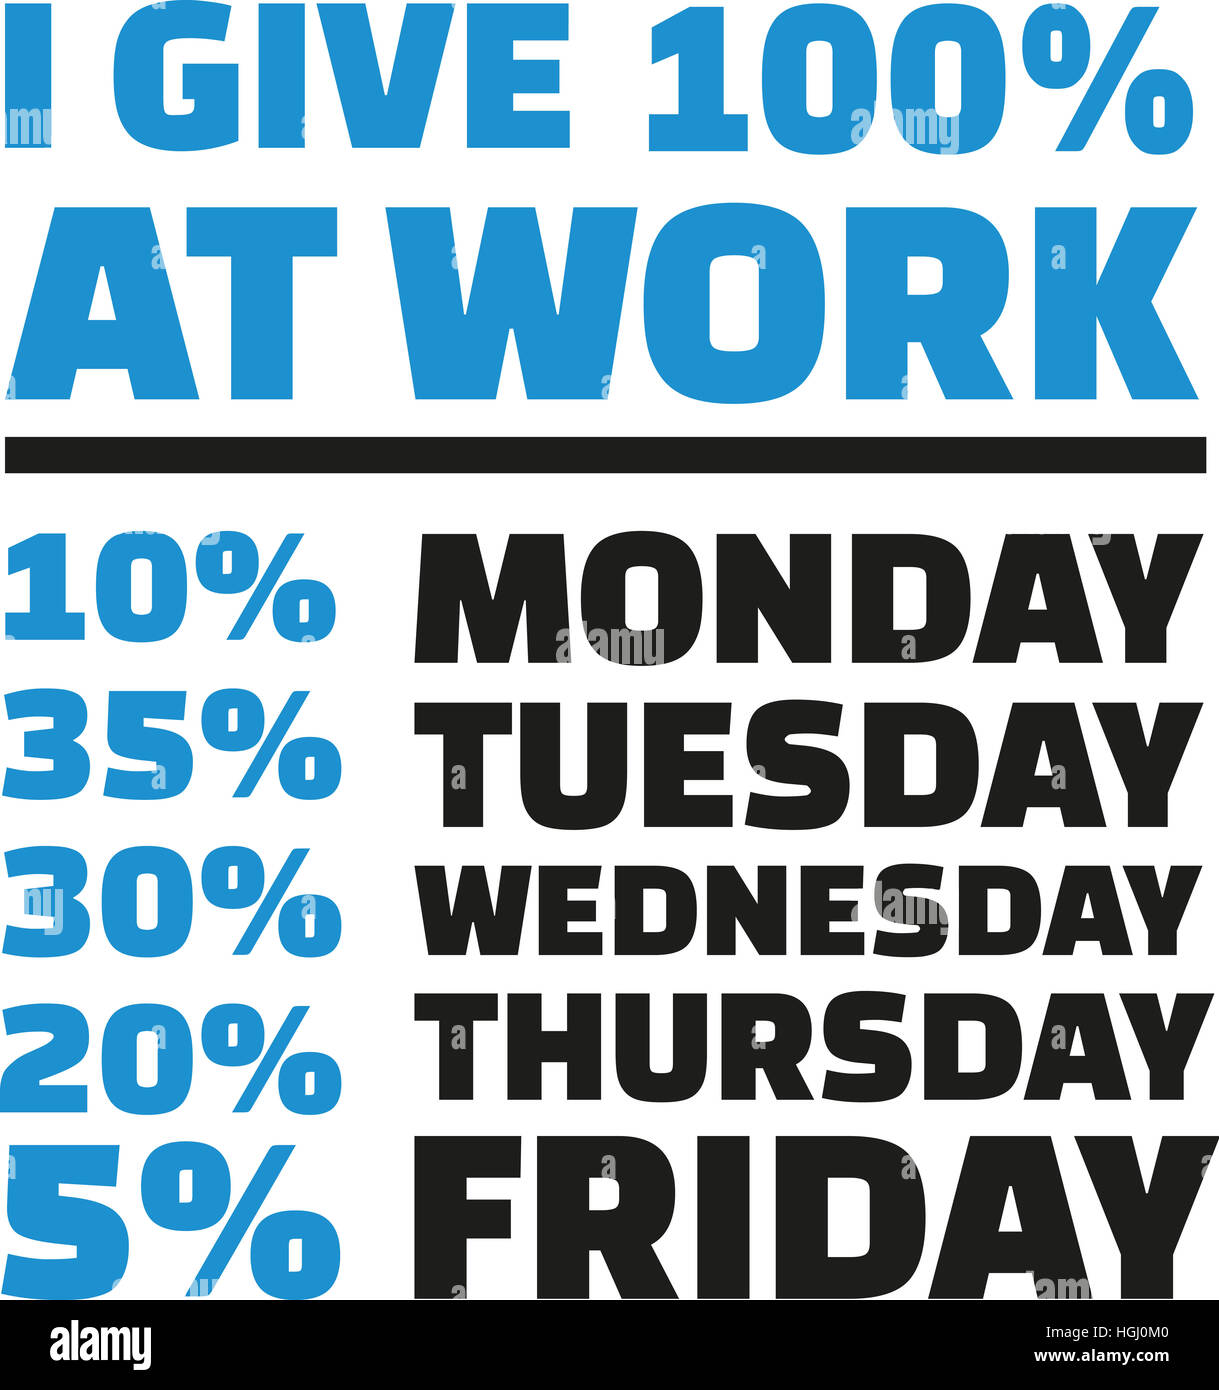 Work Motivation Slogan Typographic Stock Photo Alamy